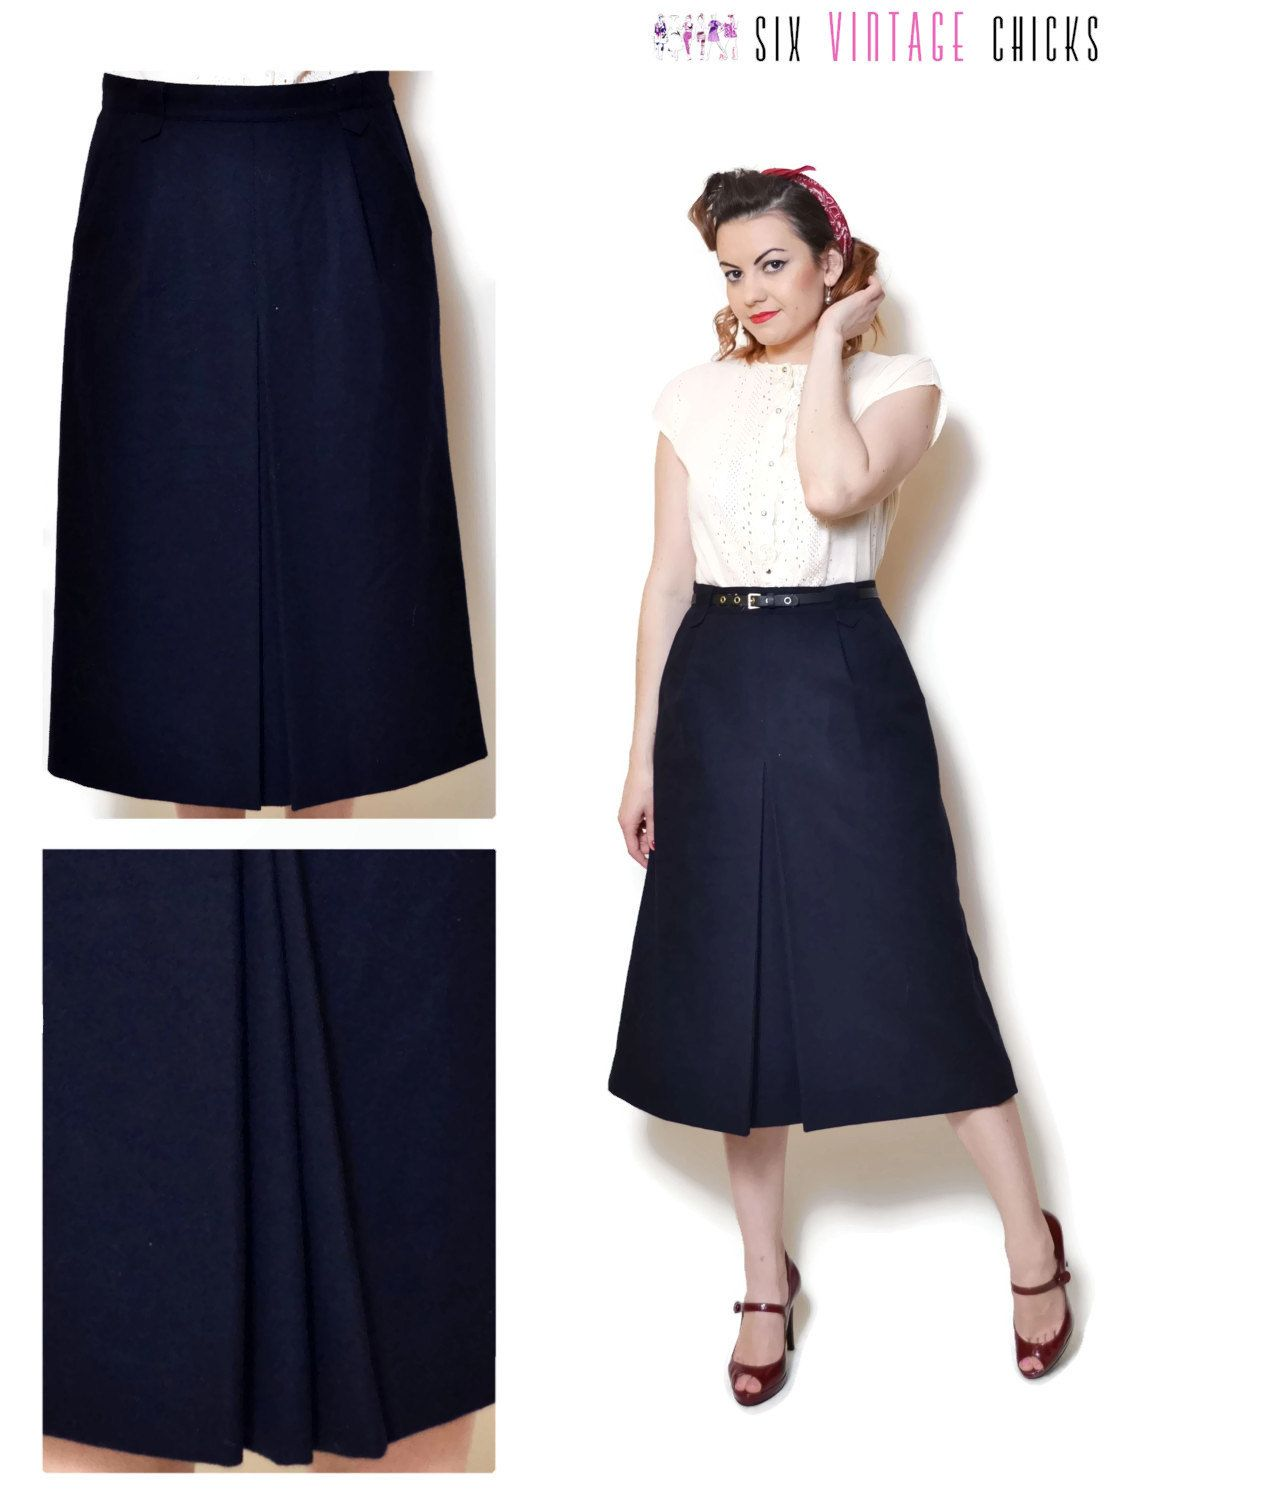 e1cc95c120 wool skirt vintage high waisted midi circle skirt with pockets 80s clothing  office clothes dark blue boho gift for her 80s skirt Retro M/L by ...